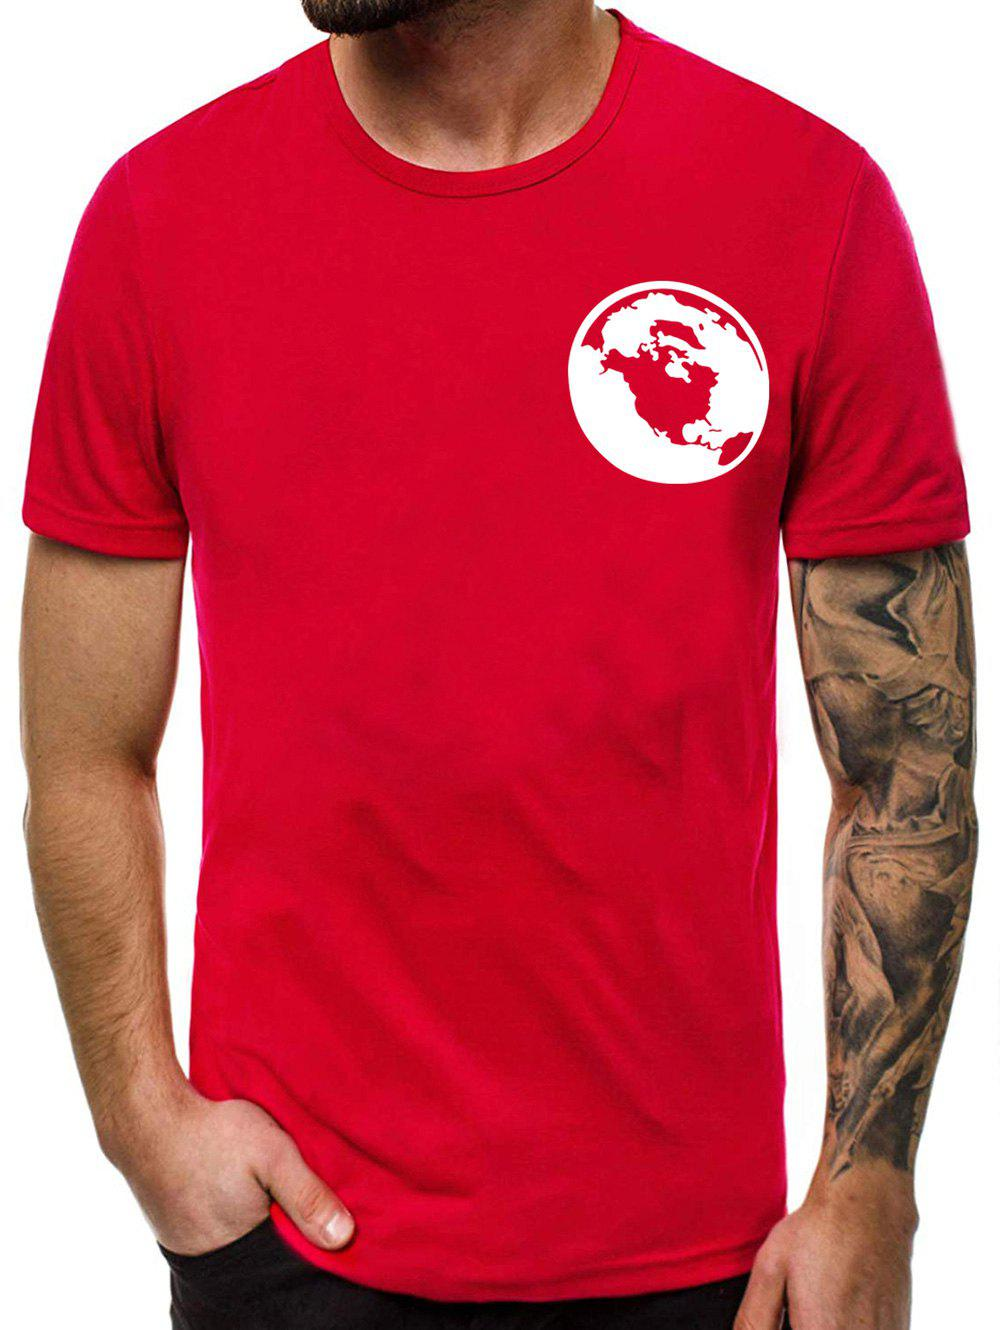 Casual Graphic Print Round Neck T-shirt - RED M